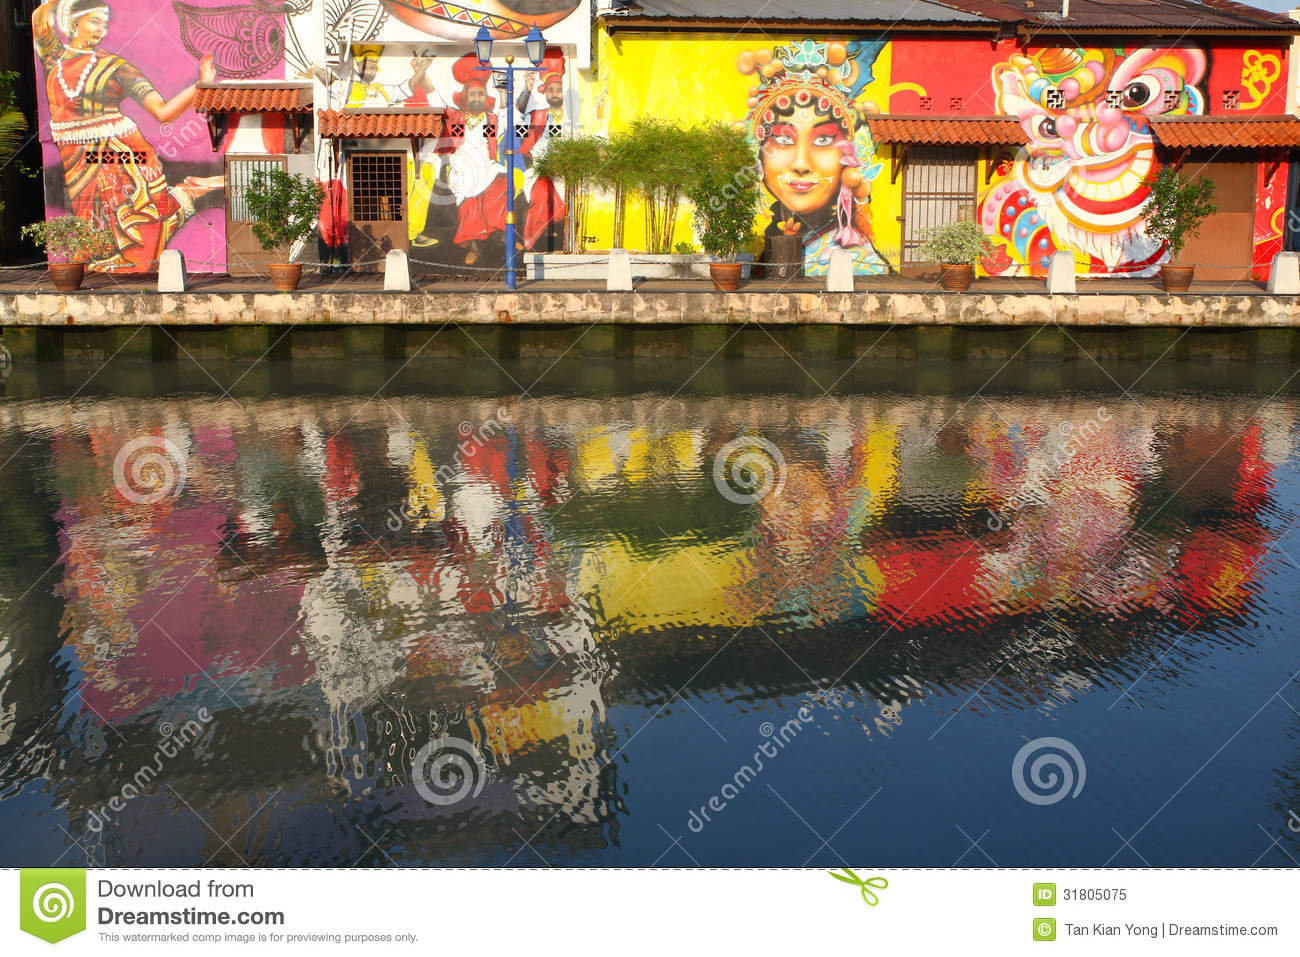 Mural paintings in melaka editorial image image 31805075 for Mural 1 malaysia